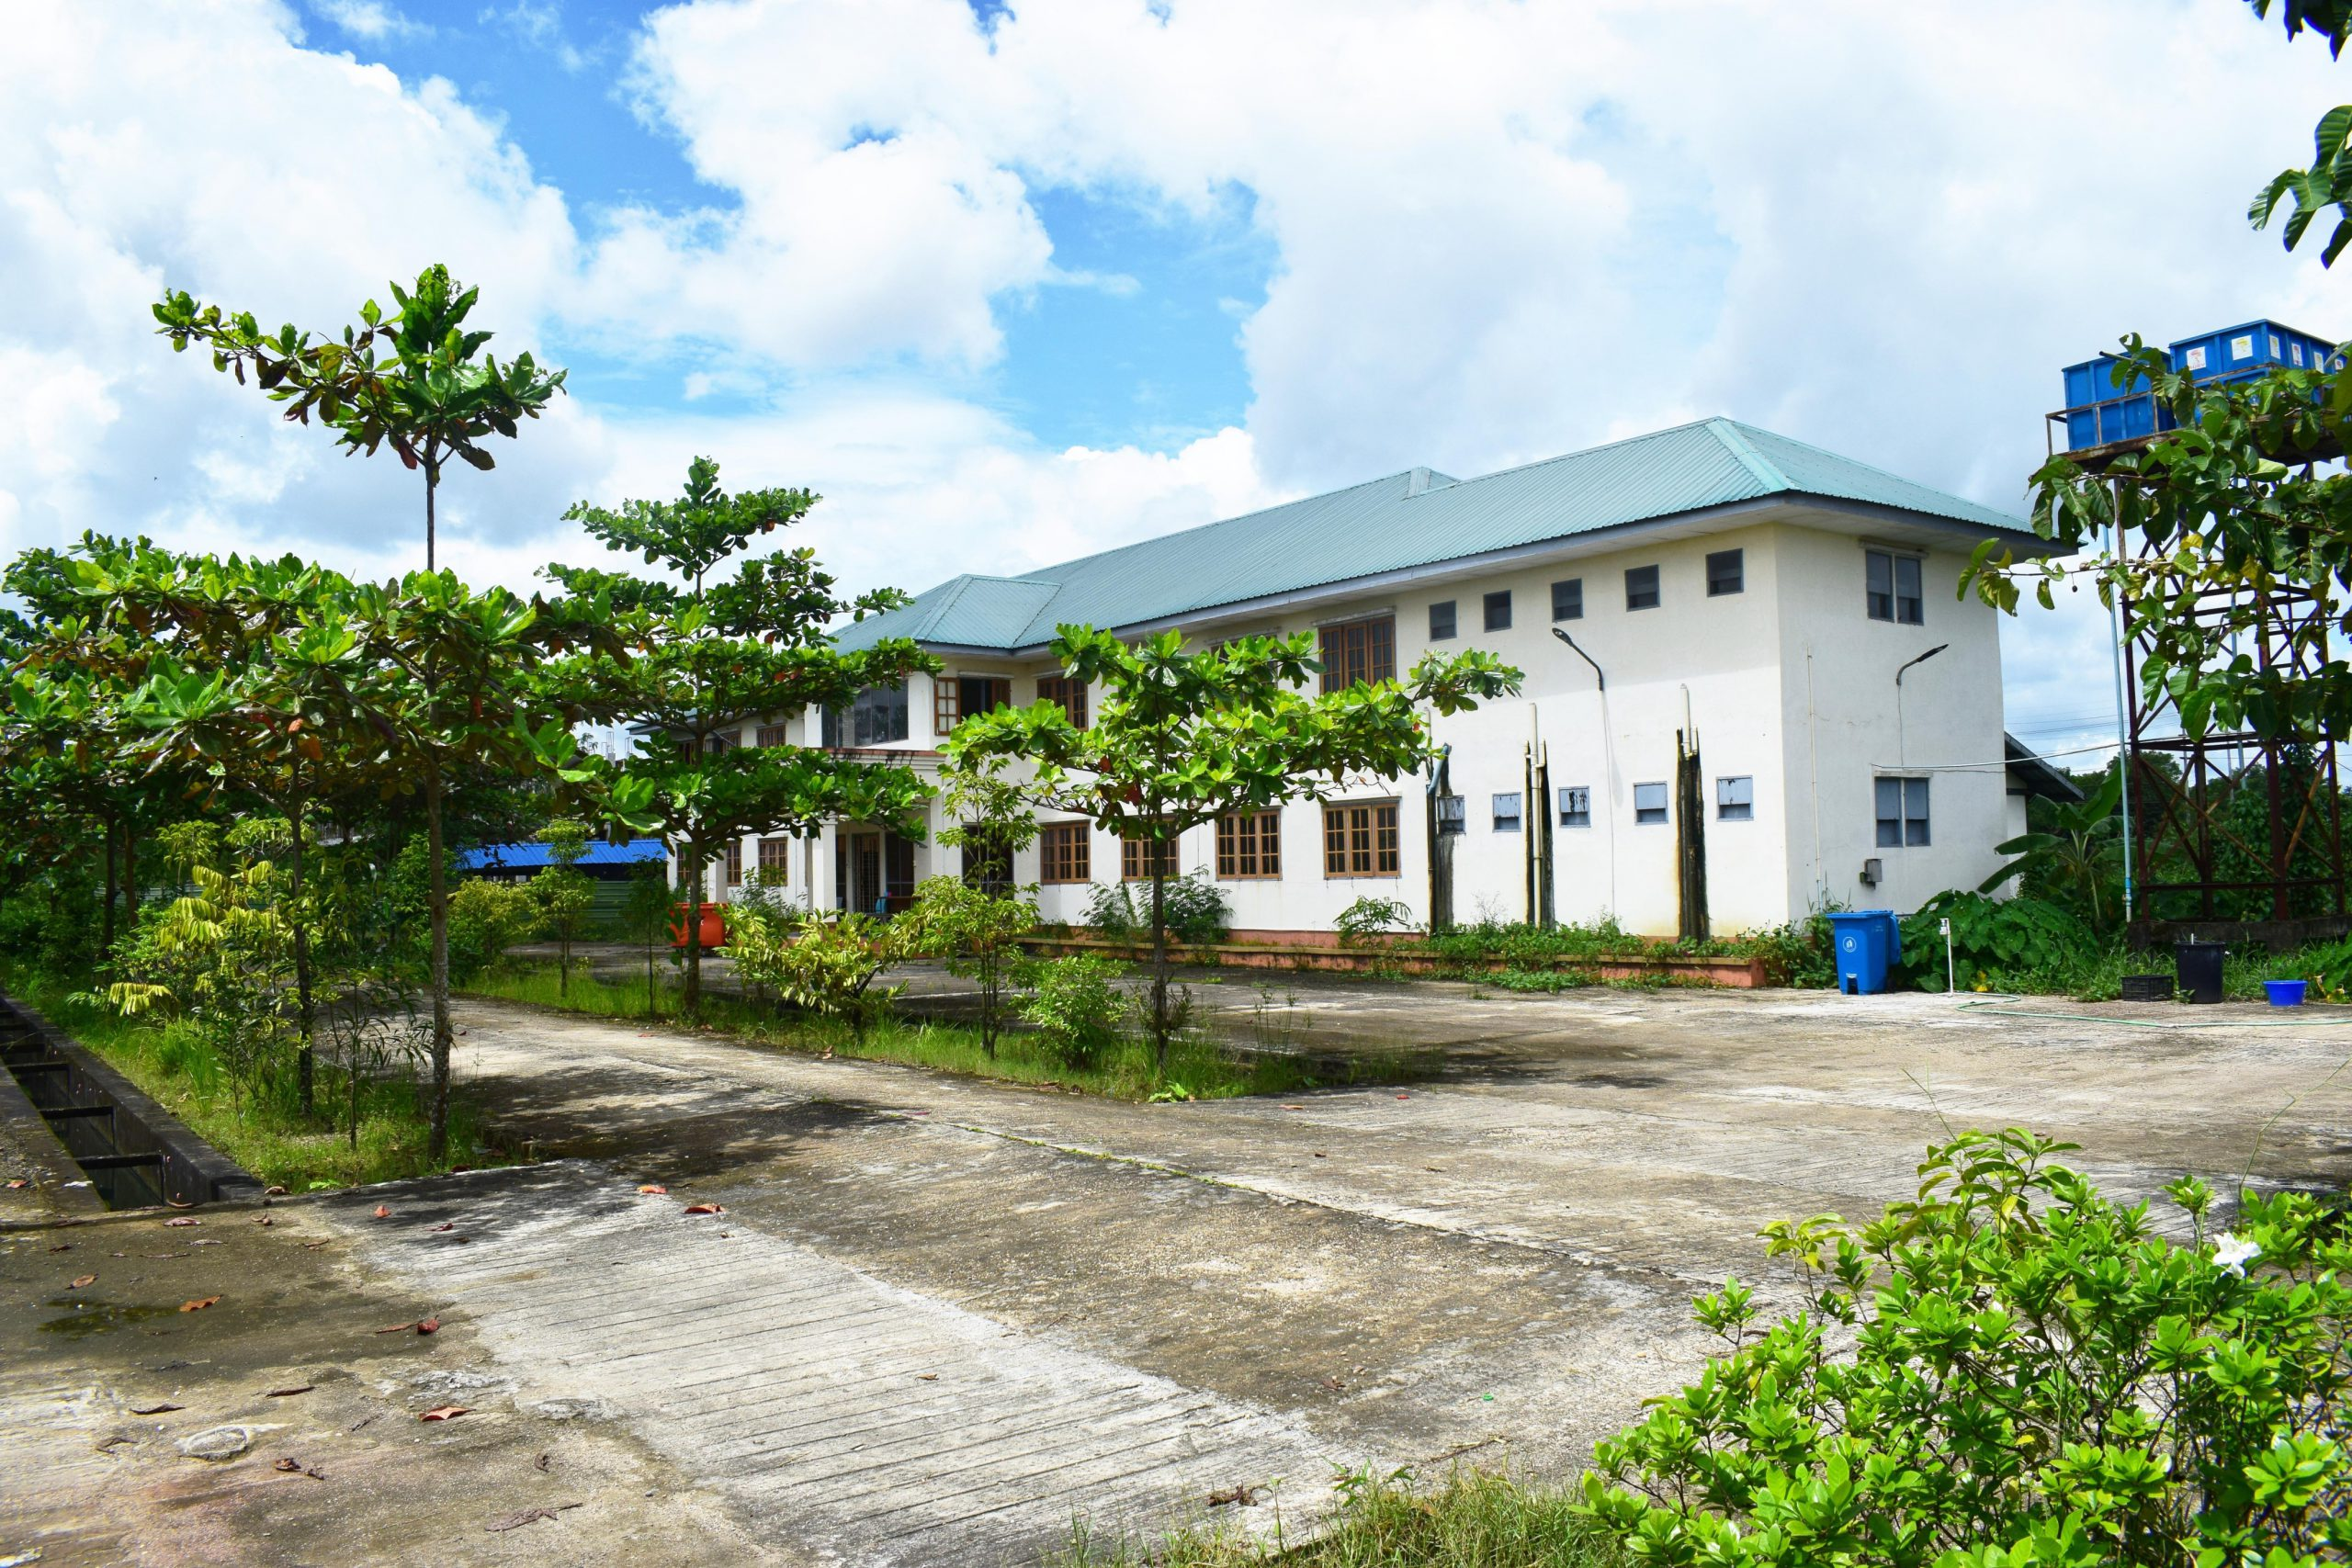 Thazin Hostel (Female) (YTG)